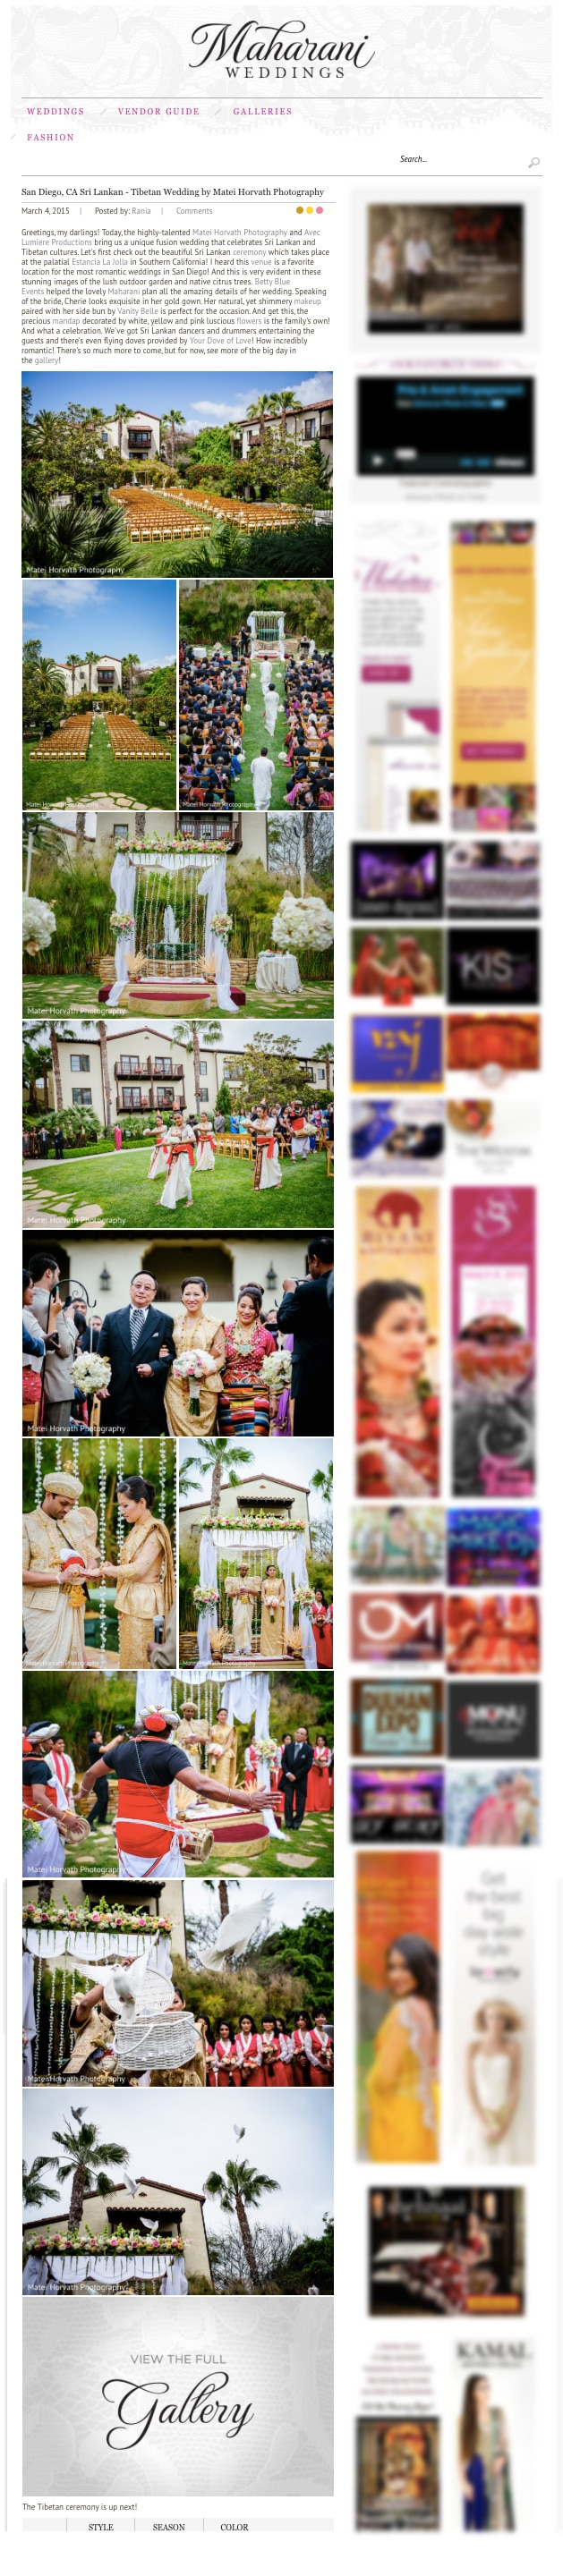 maharani weddings feature cherie and janaka wed at Estancia La Jolla